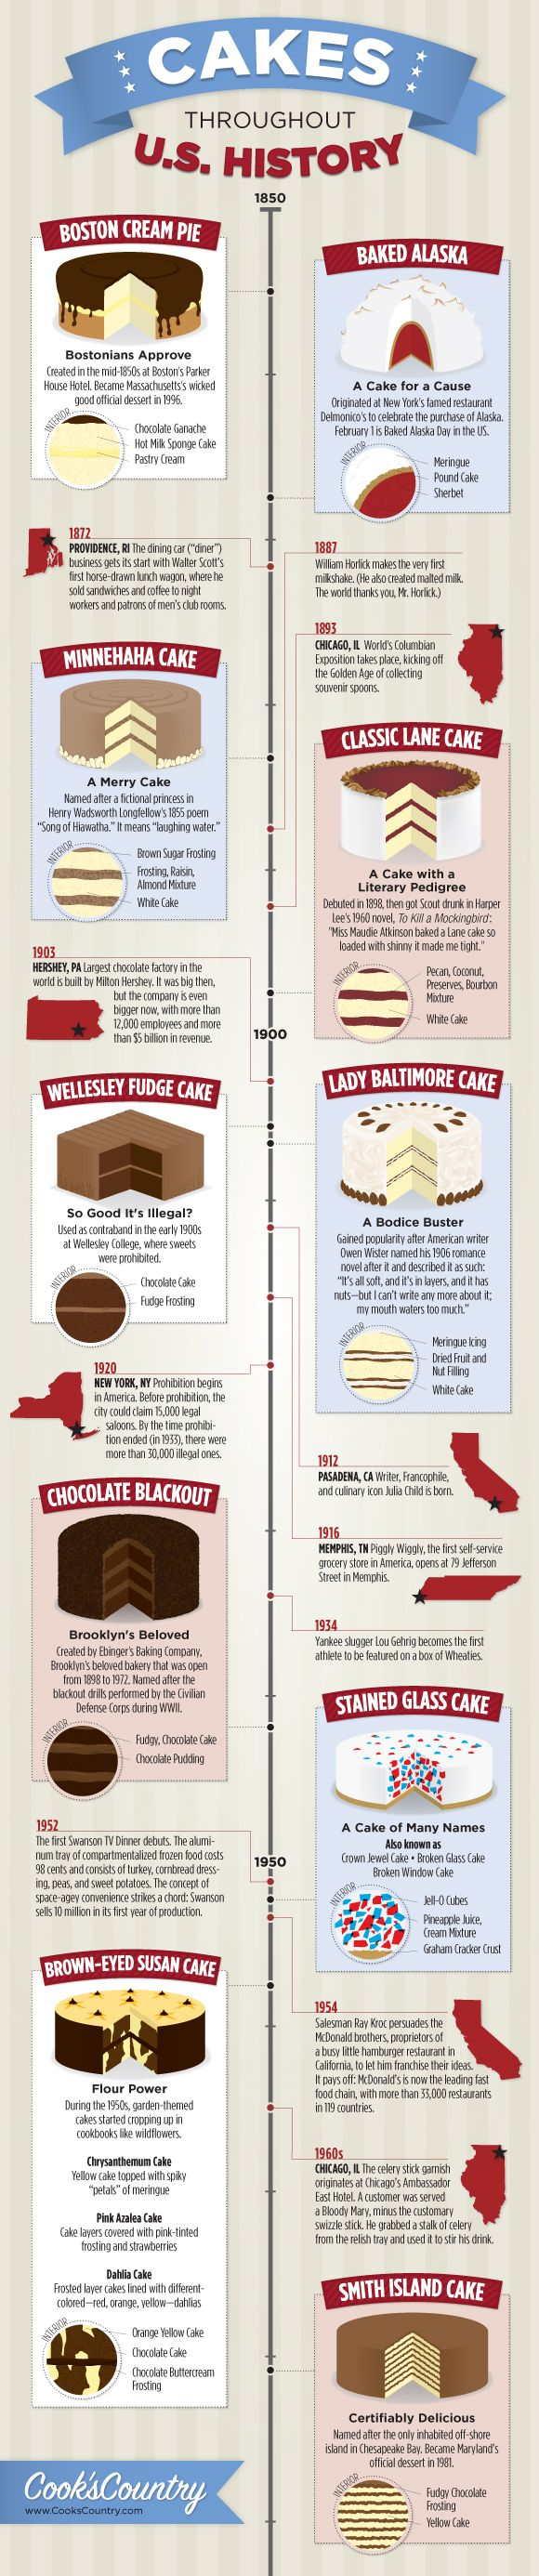 Pbs Cooks Country Test Kitchen Cakes Throughout Us History Infographic Designed By Jay Layman